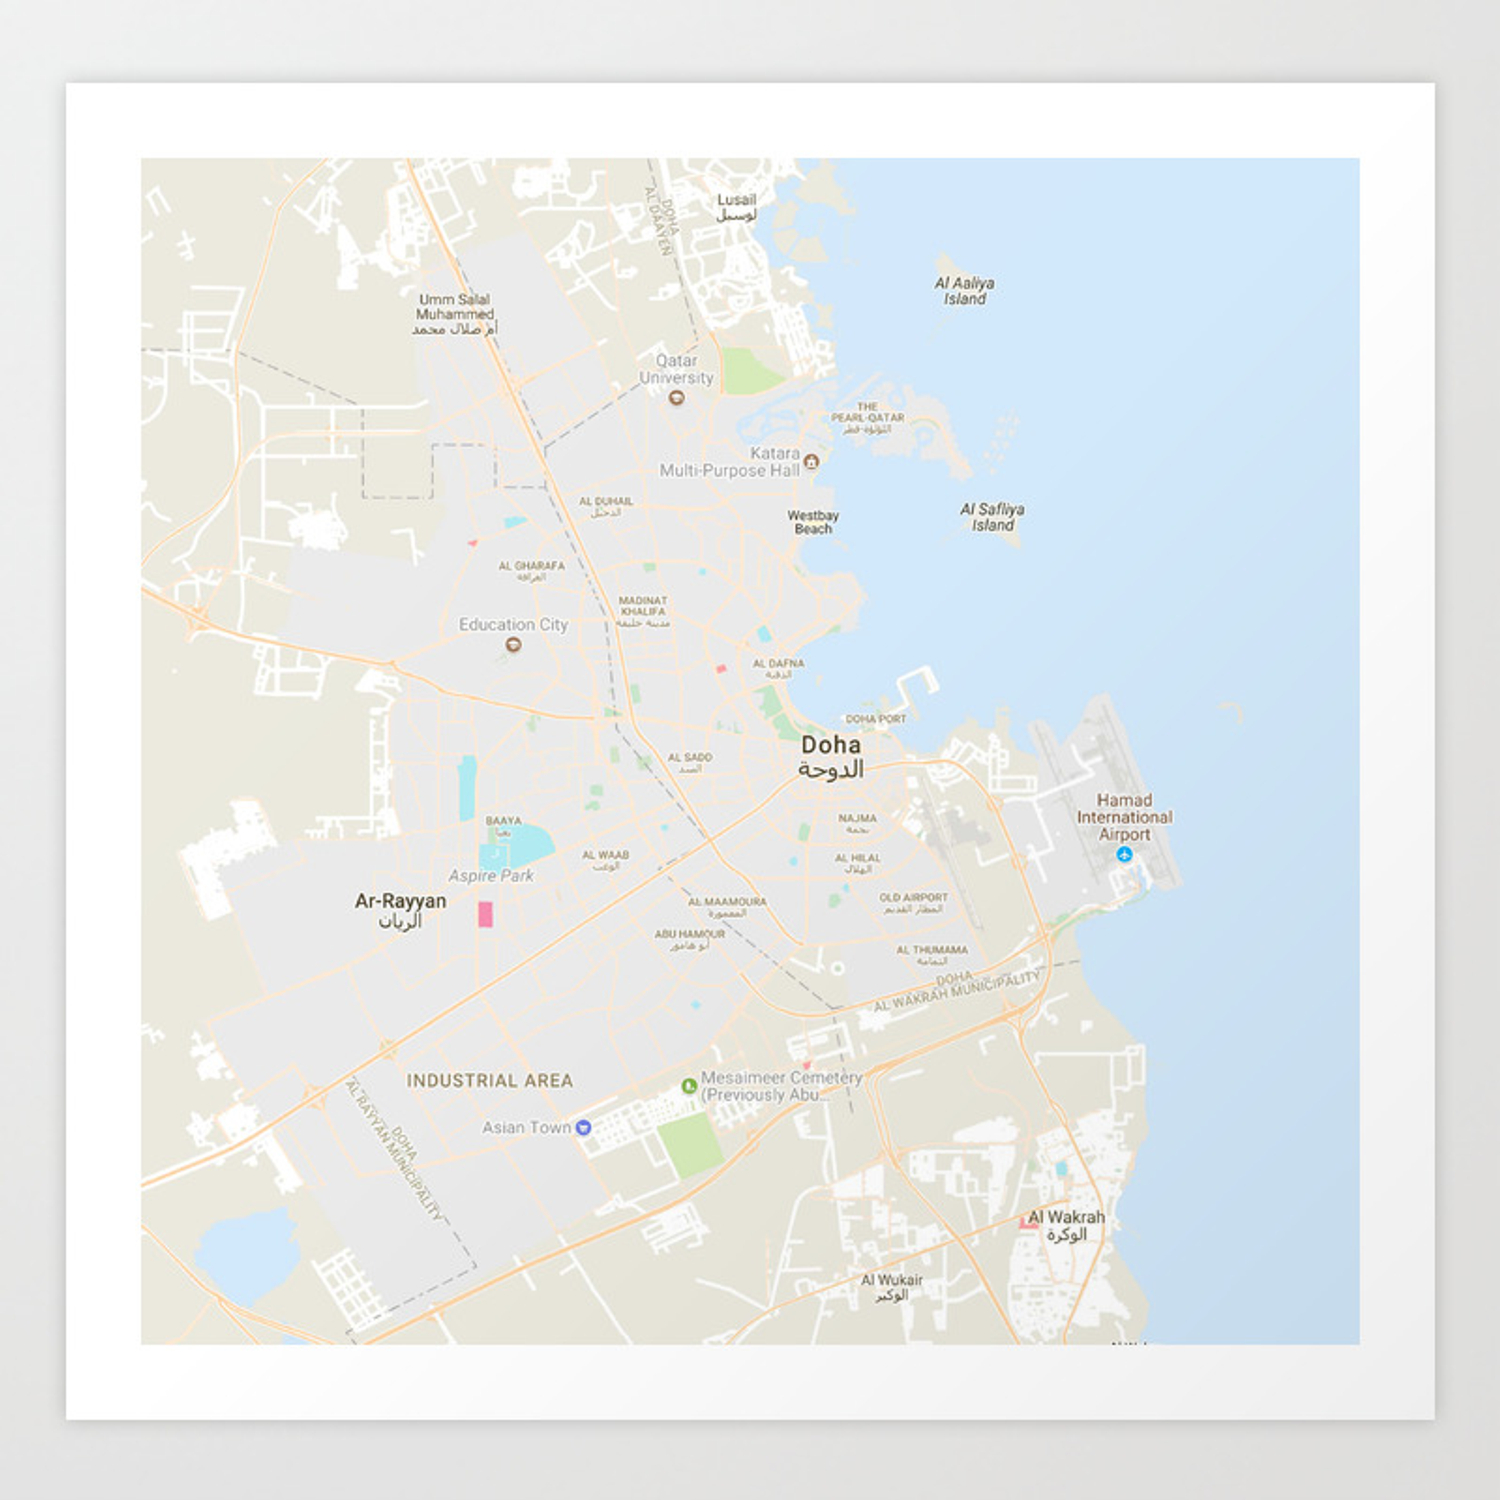 Minimalist Modern Map of Doha, Qatar 9 Art Print on tanzania map, united arab emirates map, al udeid air base, middle east map, dead sea map, bahrain map, doha corniche, qatar airways, dushanbe map, qatar map, riyadh map, sana'a map, al jazeera, ankara map, kuwait map, abu dhabi, education city, world map, abu dhabi map, manama map, dubai map, mosul map, medina map, kuwait city, doha international airport, damascus map, jerusalem map, souq waqif, baghdad map, aspire tower,